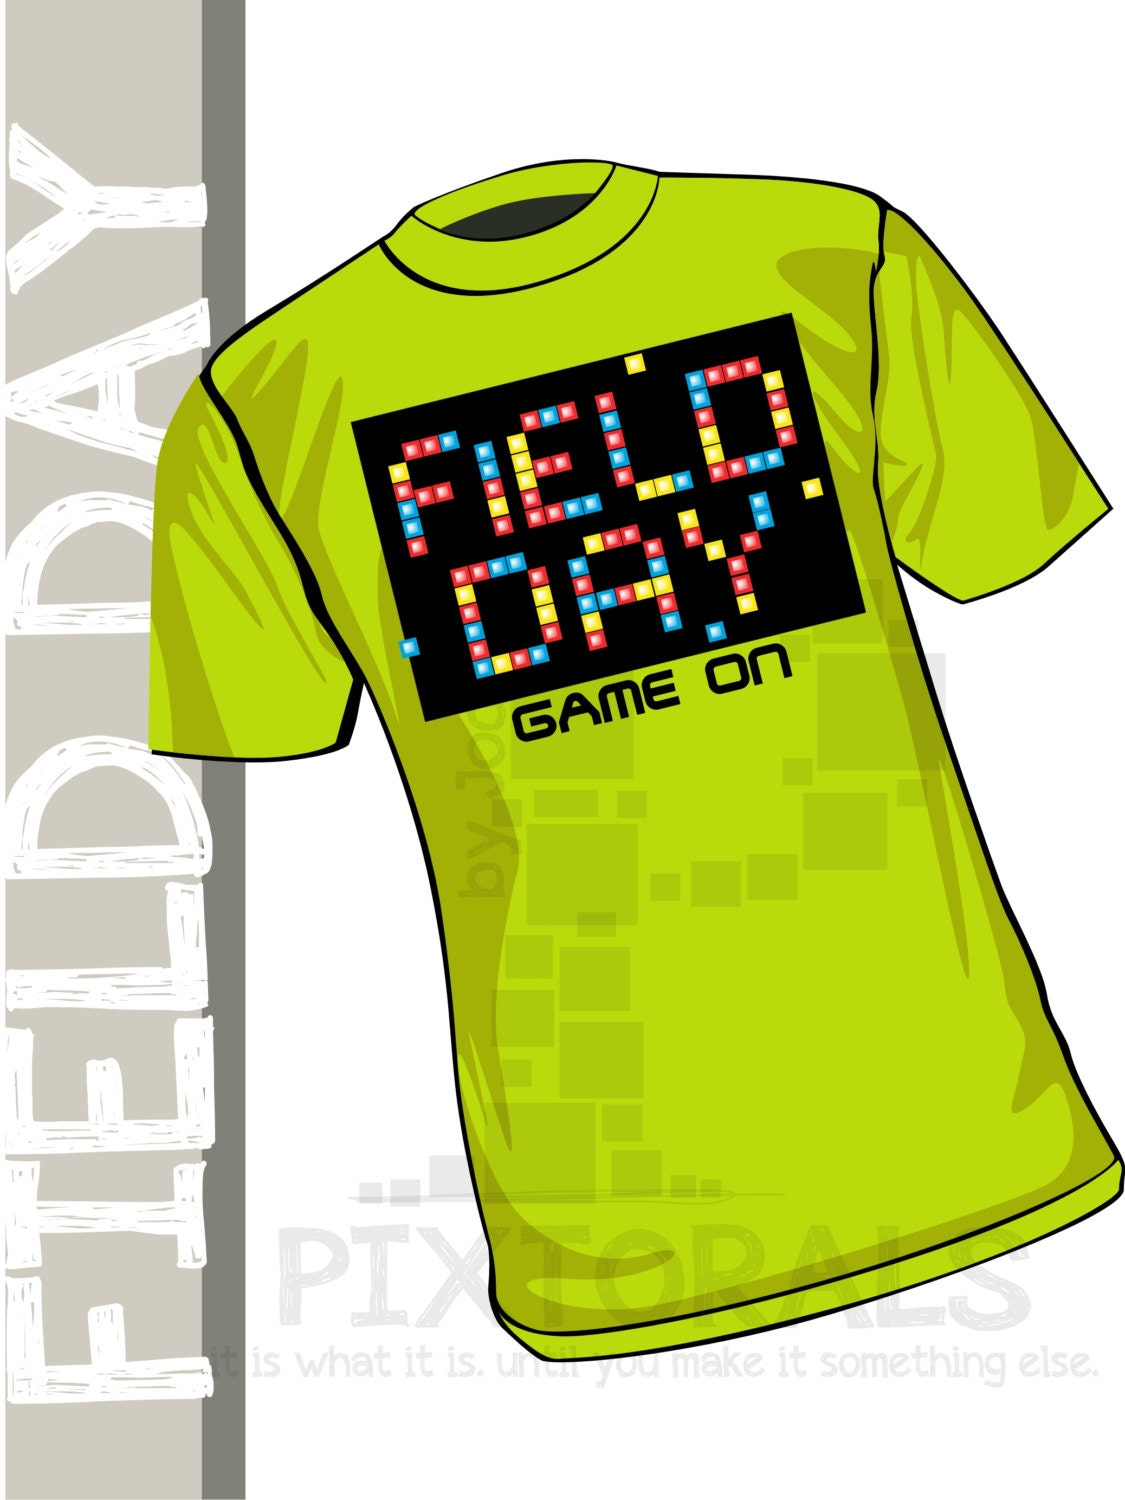 Field Day Kids Tee Shirt Design In Corel And Eps By Pixtorals